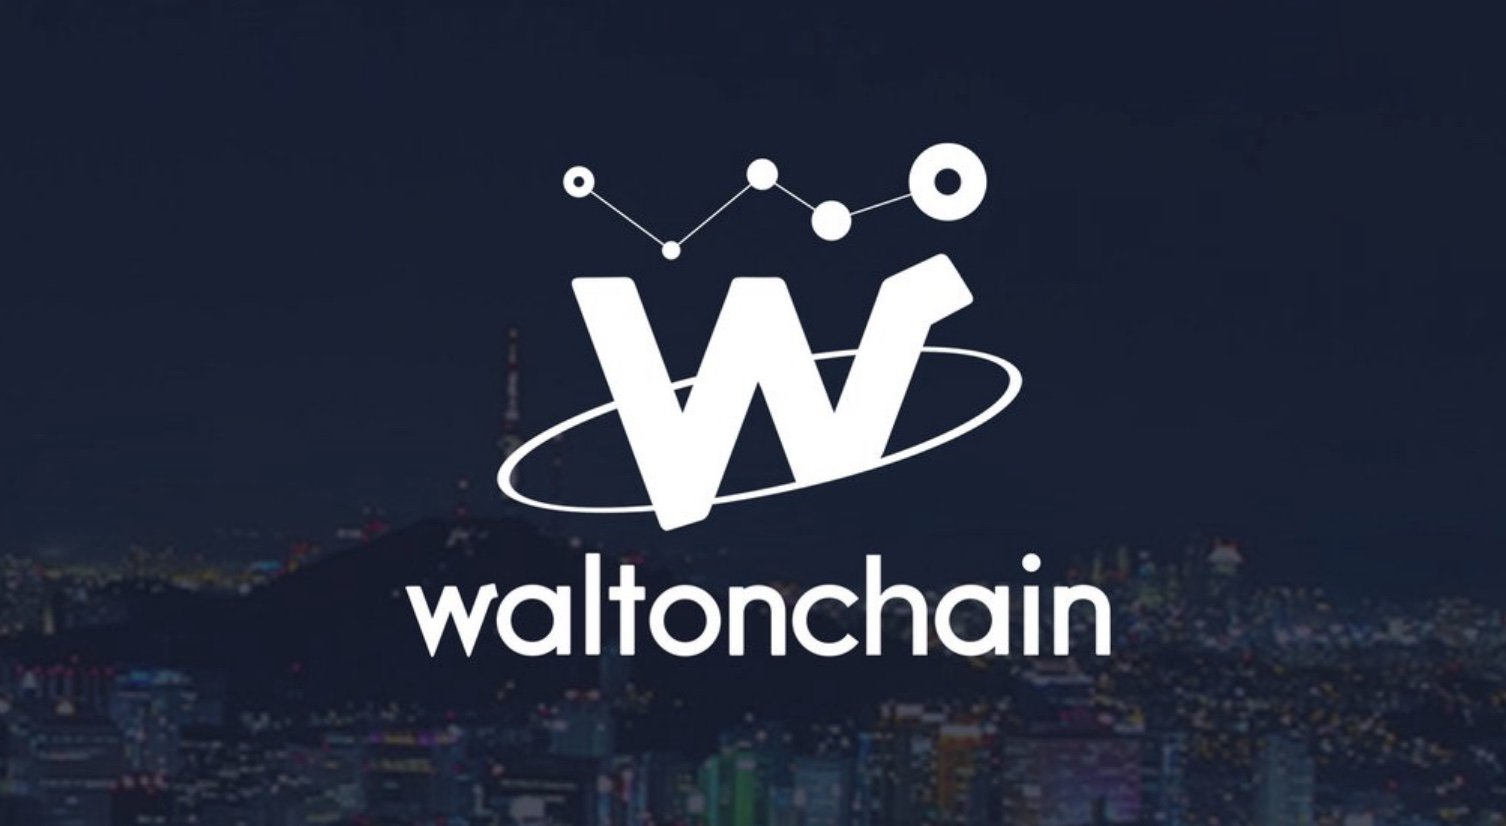 China's Pharma Scandal: Waltonchain (WTC) Provides Free Traceability Solutions For Vaccines 13